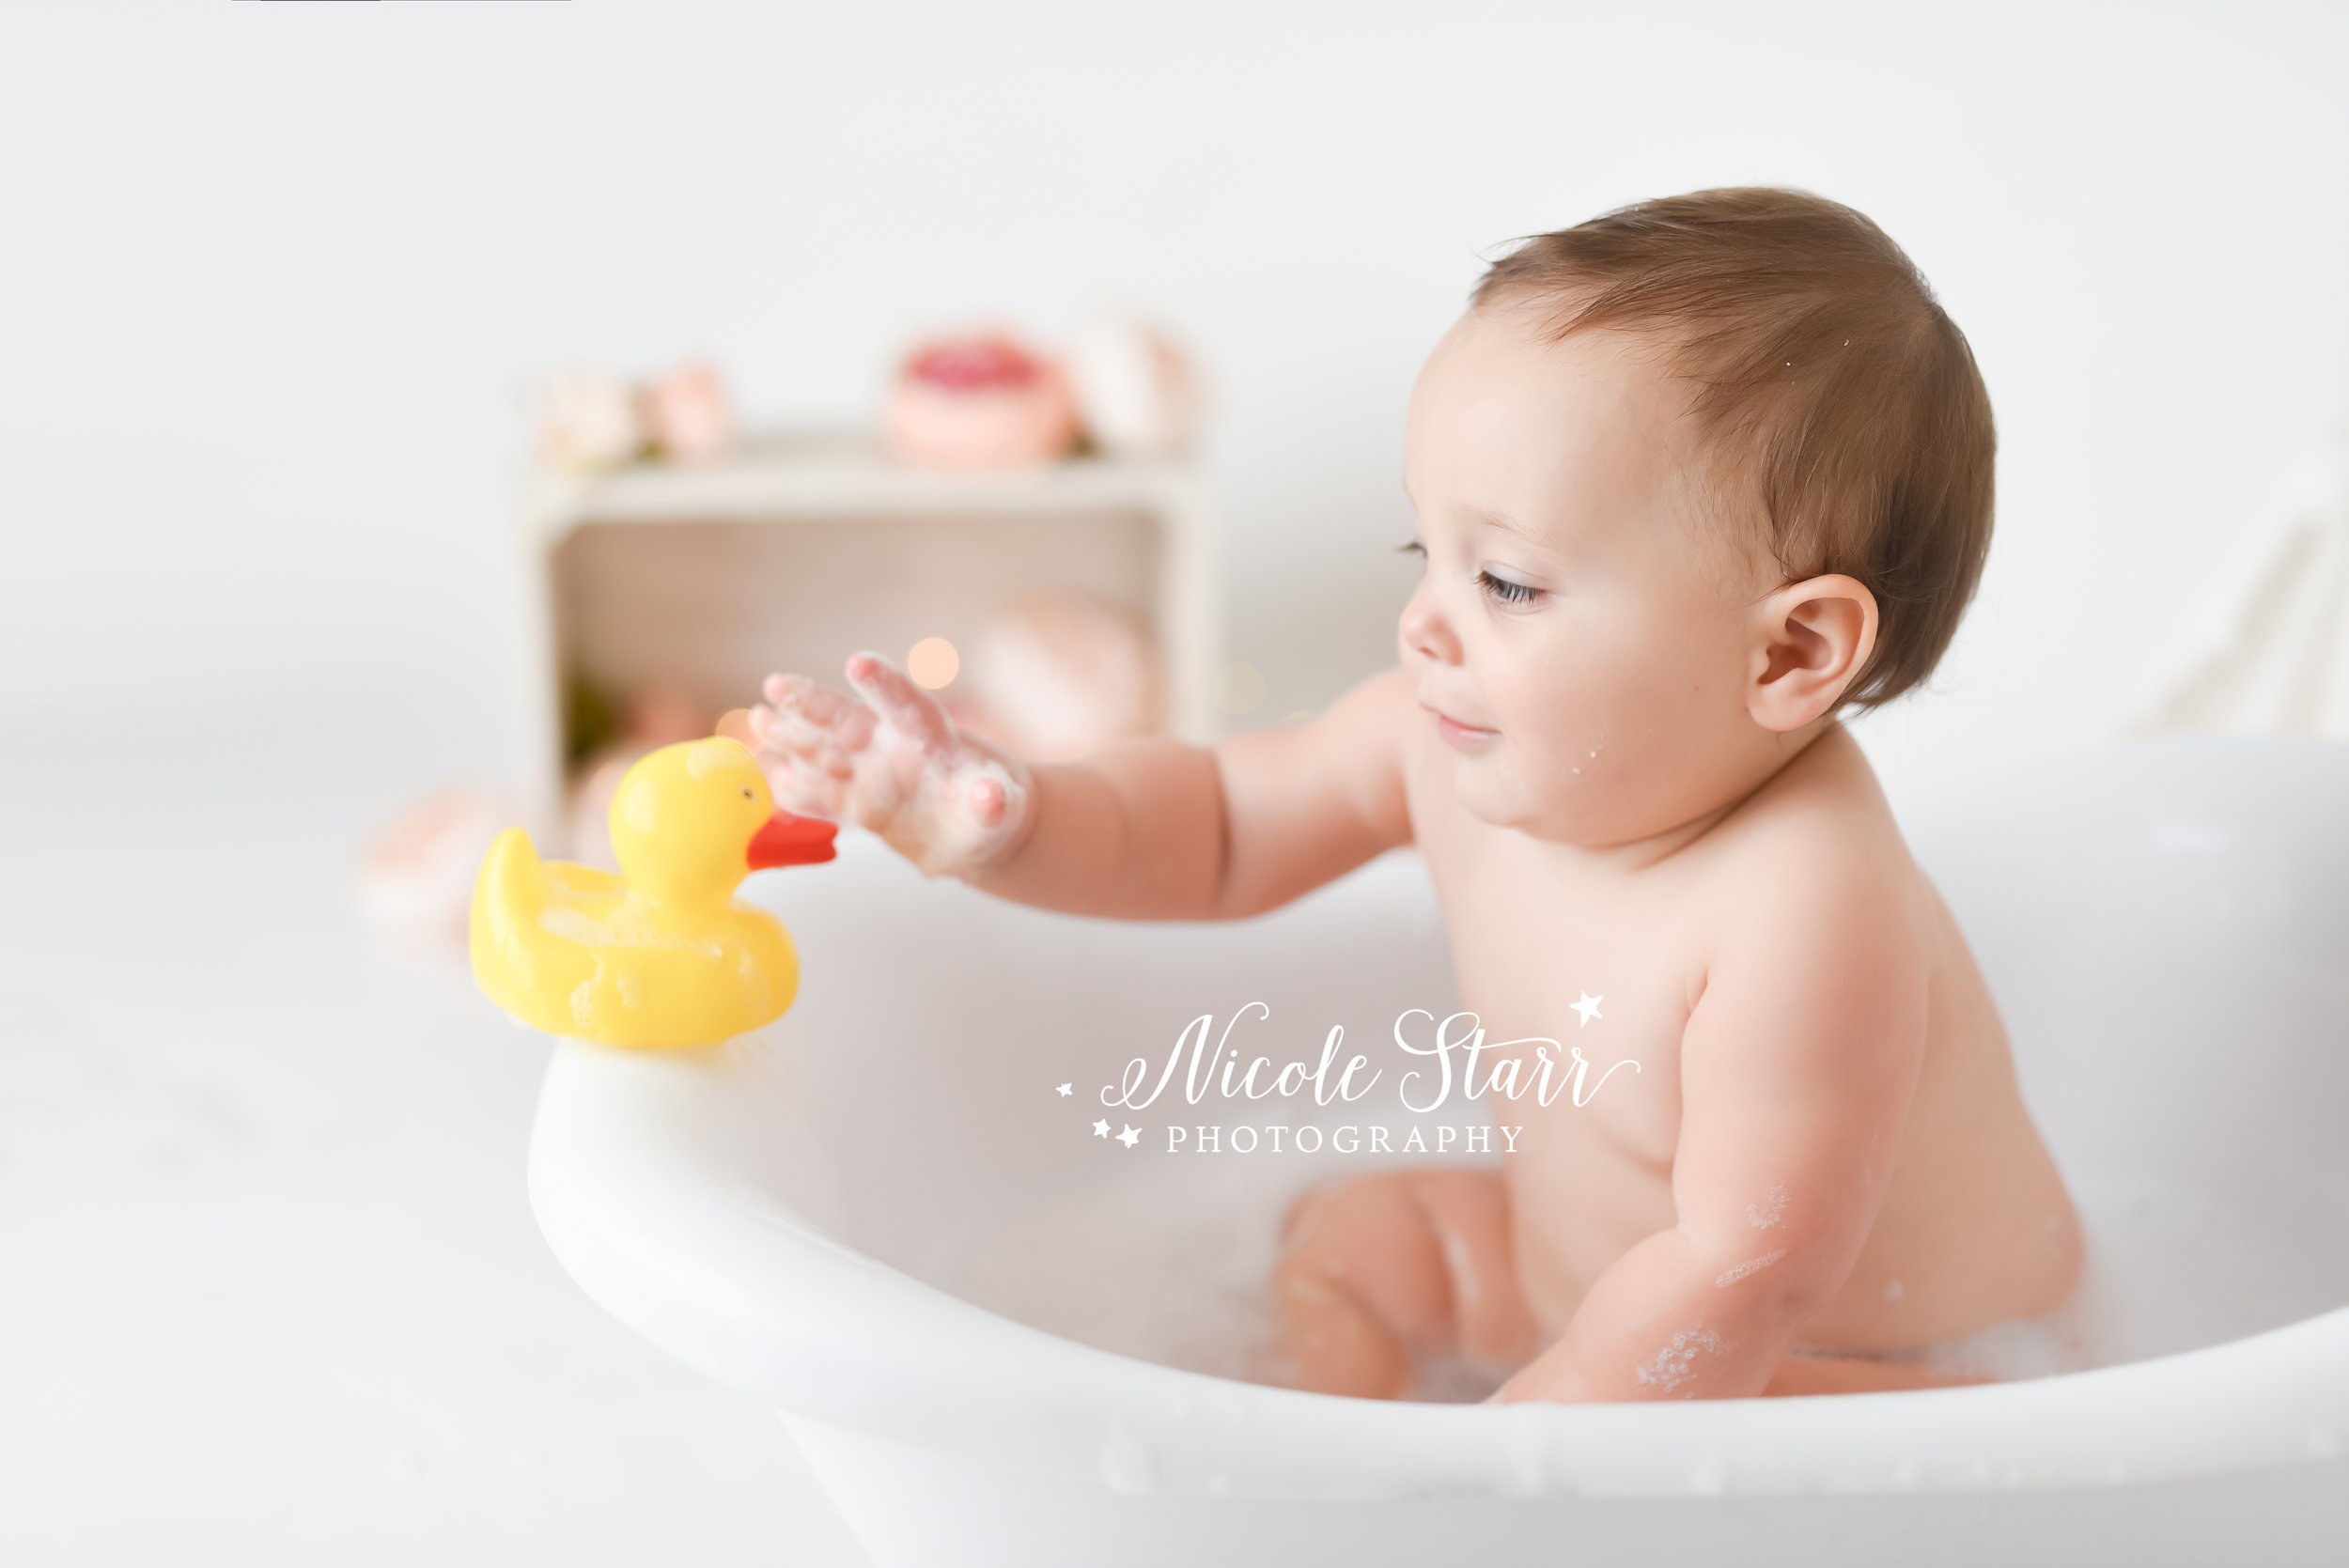 Nicole Starr Photography | Saratoga Springs Cake Smash Photographer | Boston Cake Smash Photographer | Saratoga Springs Family Photographer | Boston Family Photographer Delmar NY Cake Smash Photographer | Loudonville NY Cake Smash Photographer, floral cake smash, Peony floral cake smash